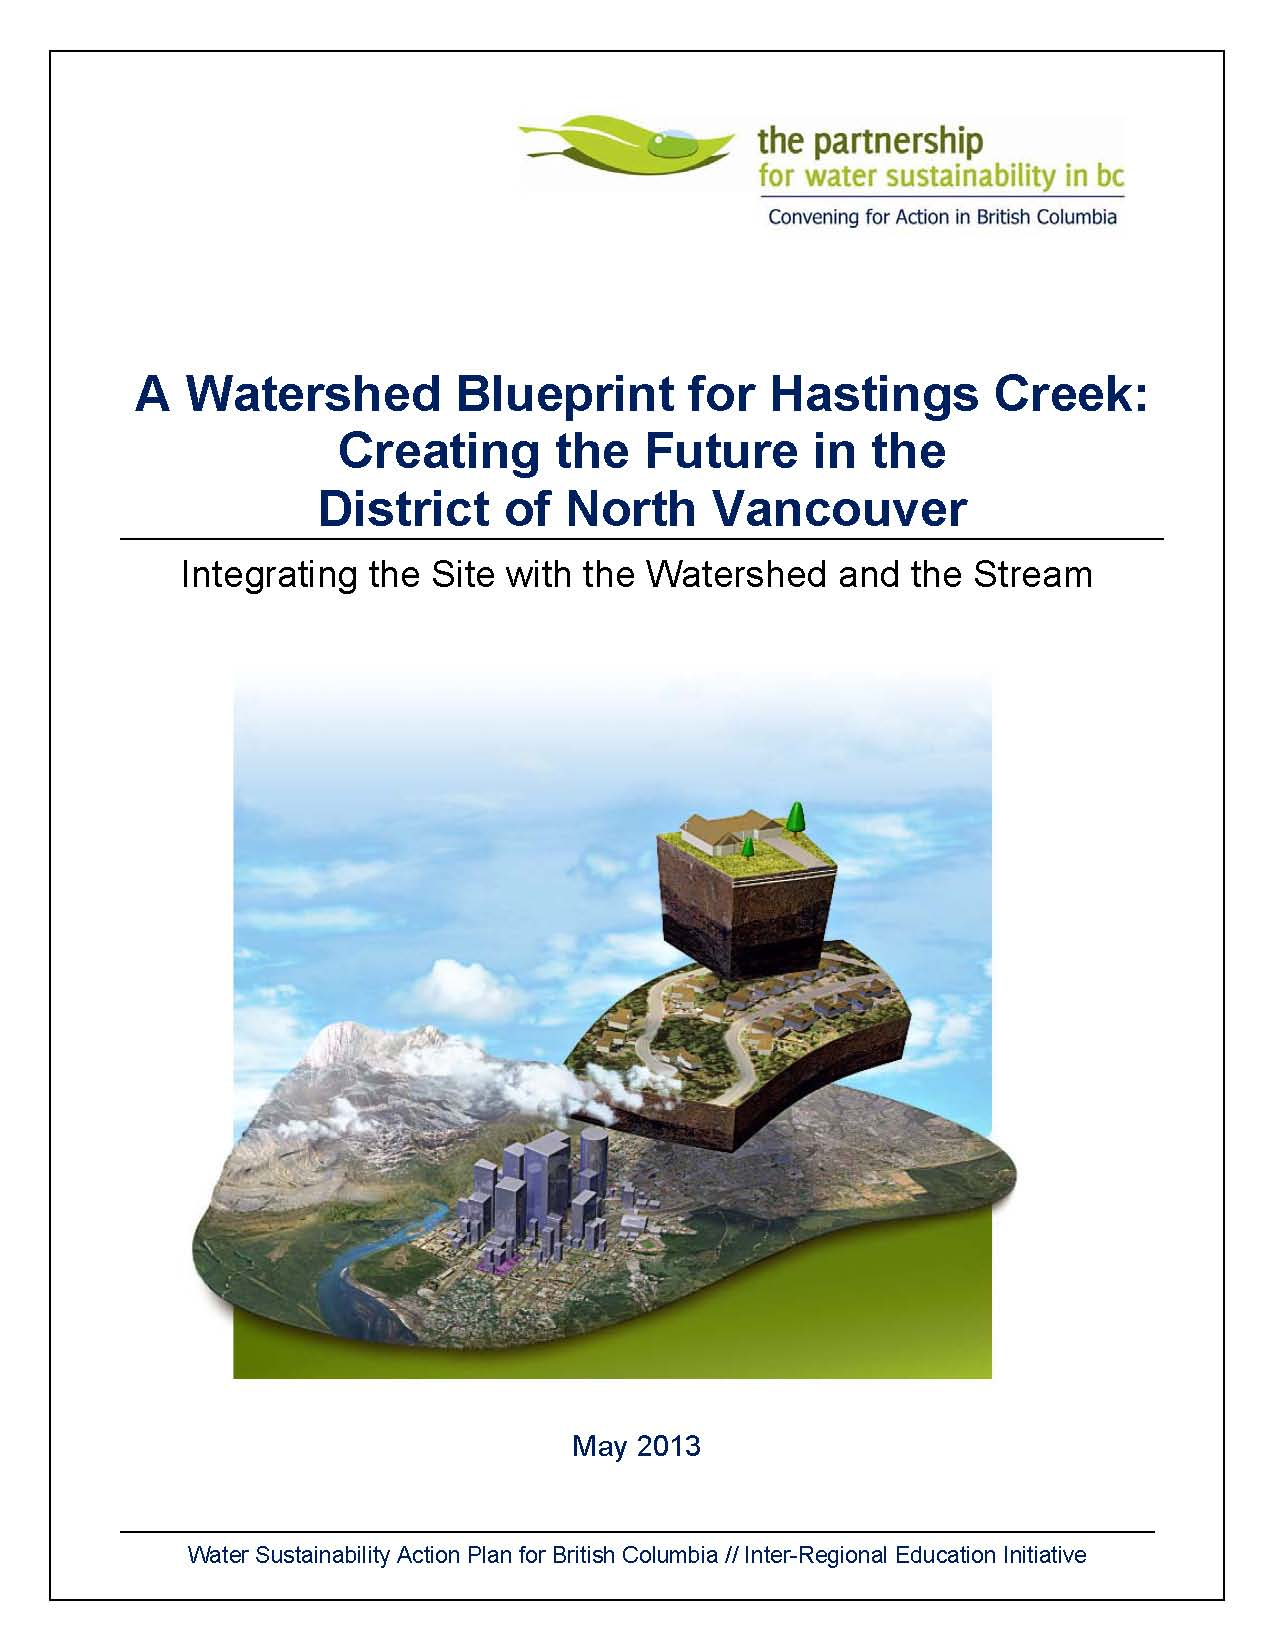 Hastings-Creek_Story-of-Watershed-Blueprint_May-2013_cover